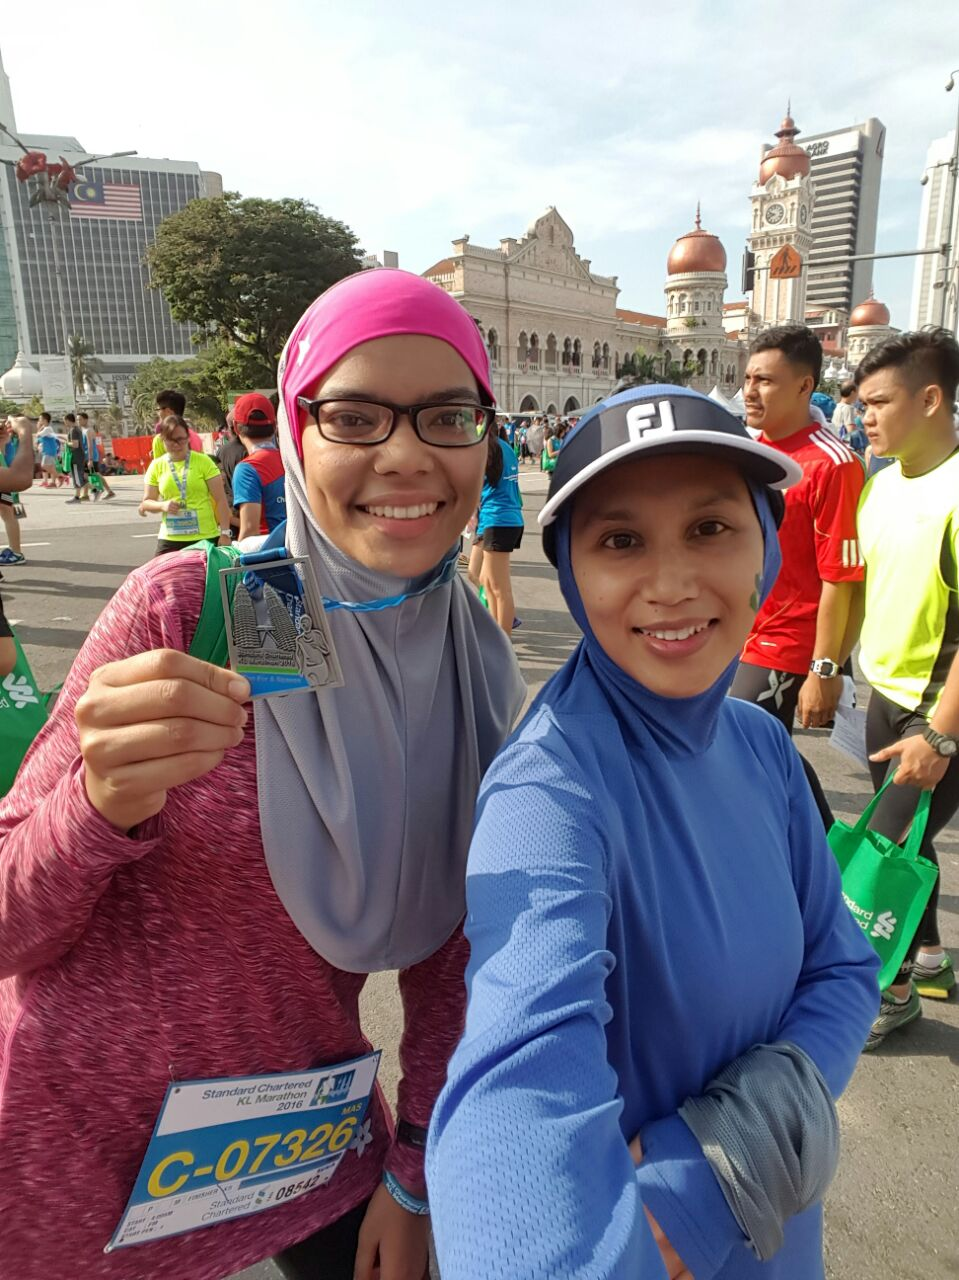 Congrats Kak Eliza for doing PB in HM today! Keep it up!